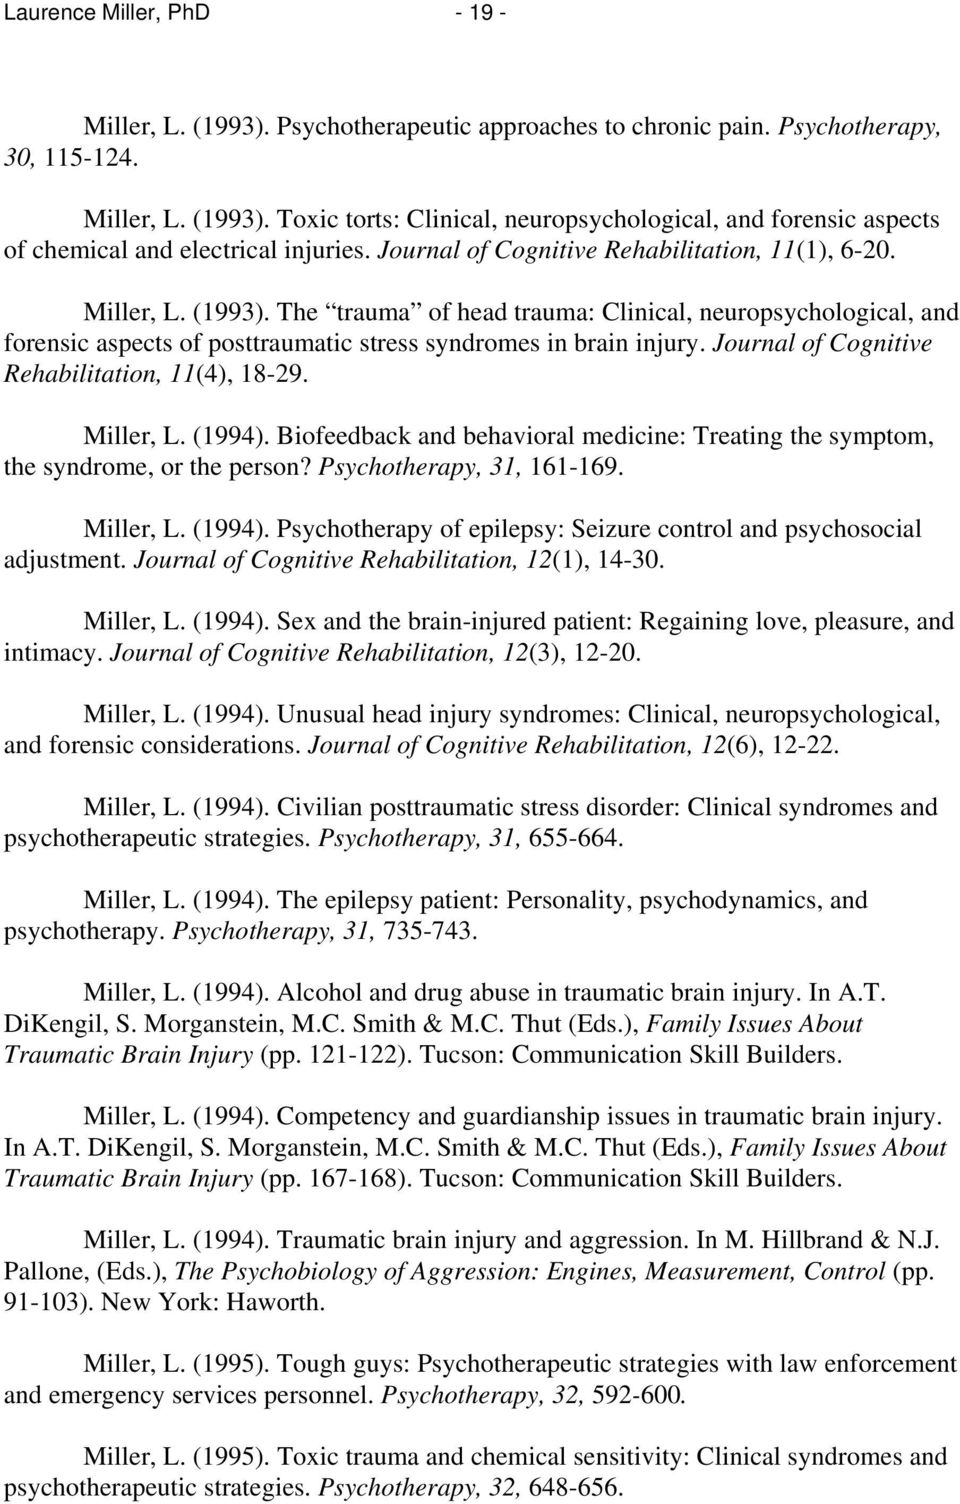 Journal of Cognitive Rehabilitation, 11(4), 18-29. Miller, L. (1994). Biofeedback and behavioral medicine: Treating the symptom, the syndrome, or the person? Psychotherapy, 31, 161-169. Miller, L. (1994). Psychotherapy of epilepsy: Seizure control and psychosocial adjustment.